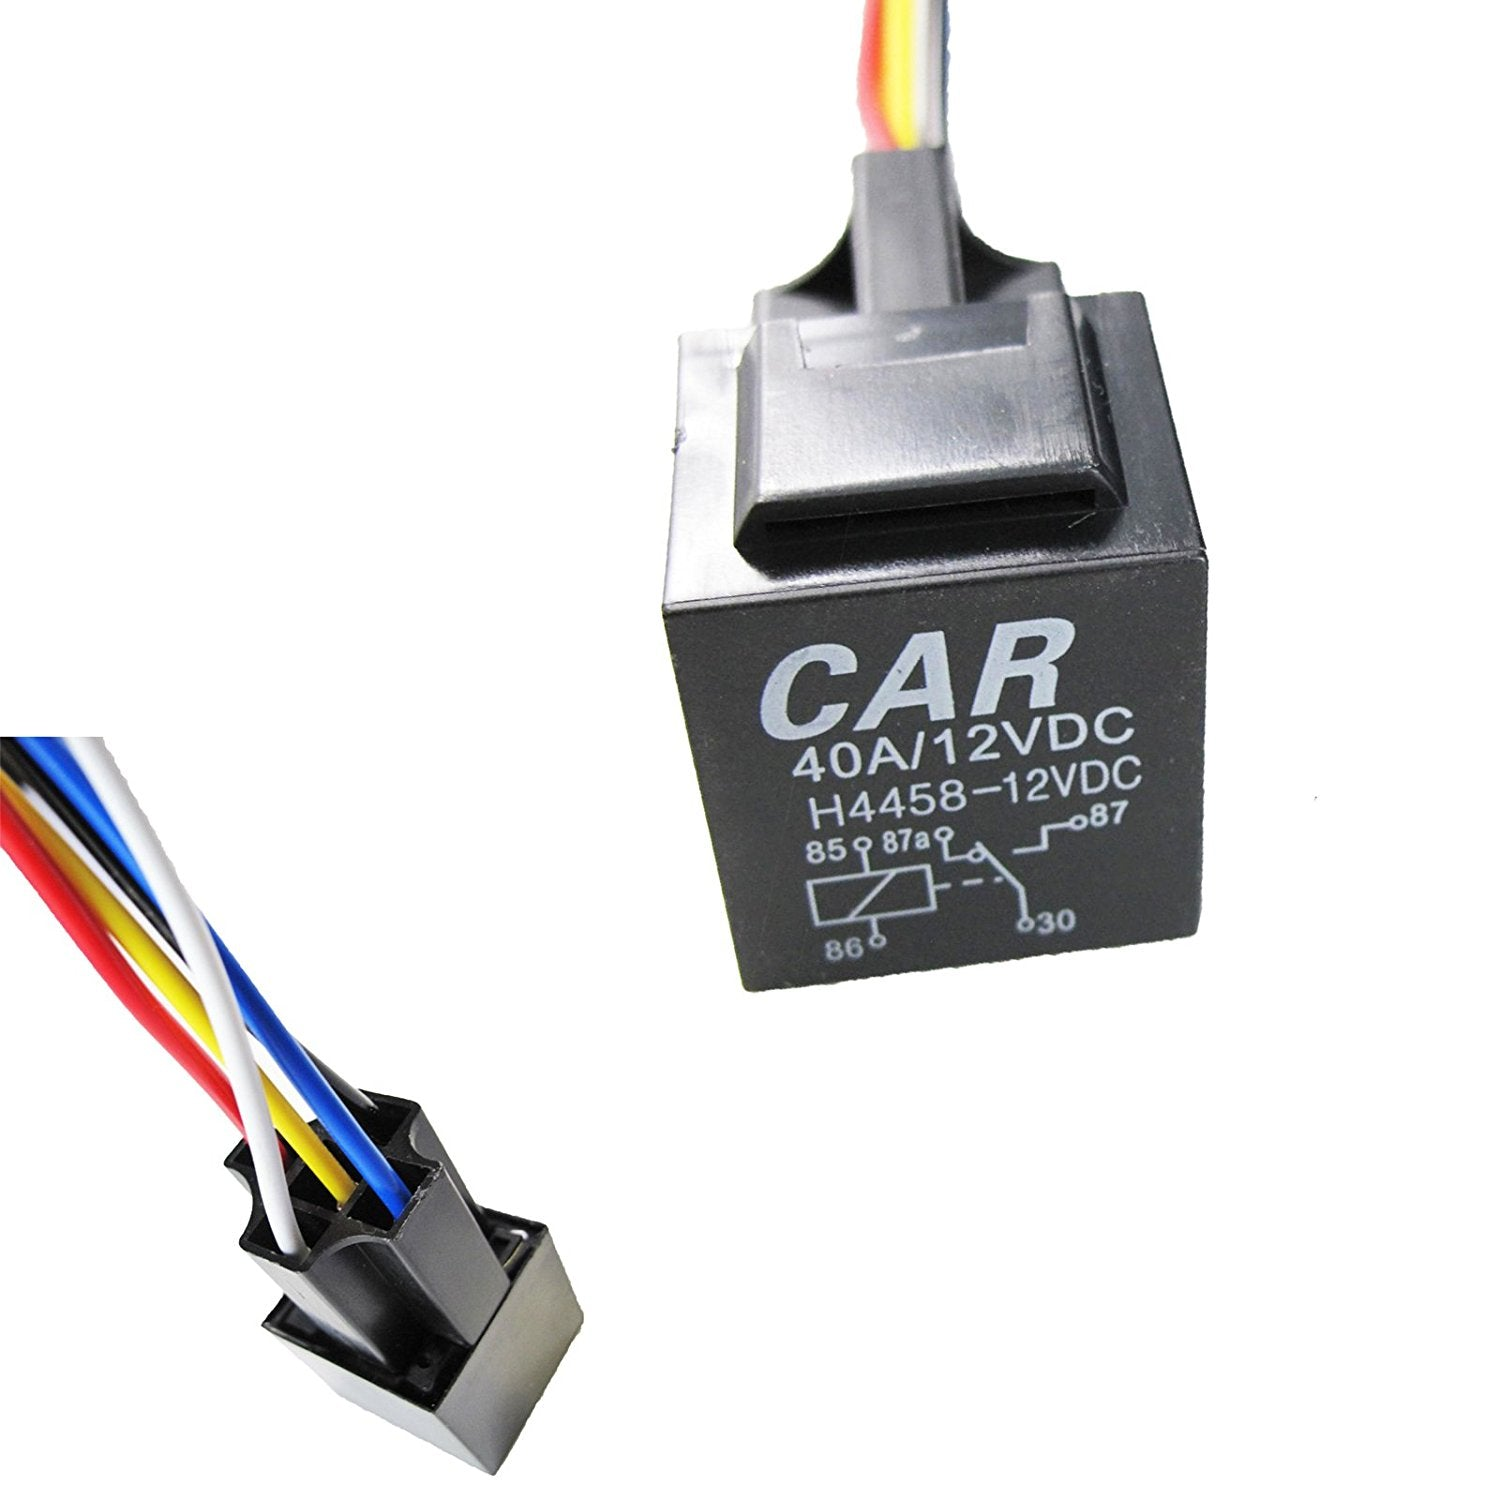 1x 5 Pin 12v 40a Spdt Auto Relay Socket Wire For Car Fog Light Drl Dpdt Wiring